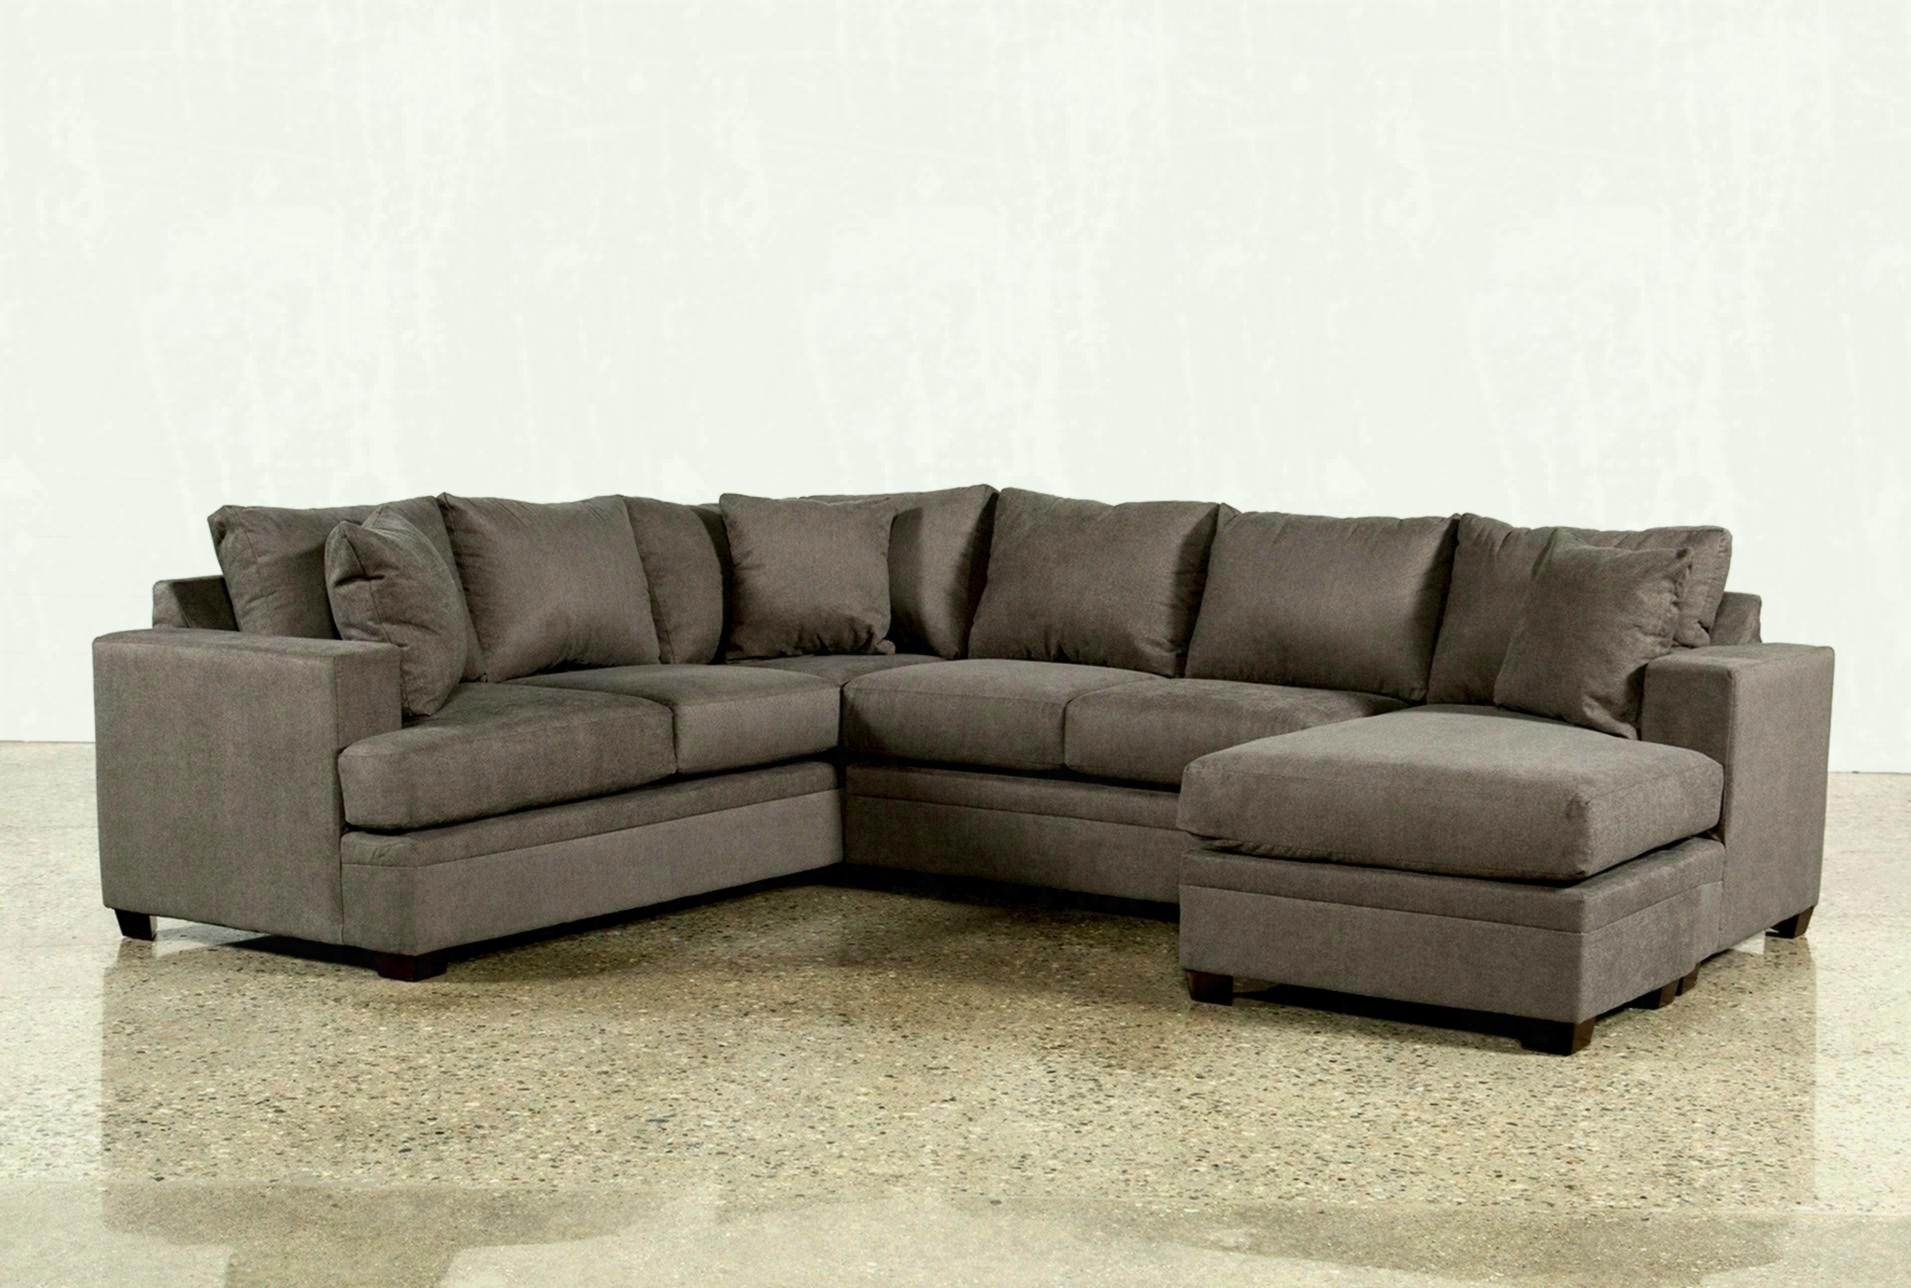 Added To Cart Kerri Piece Sectional W Raf Chaise Living Spaces With Aquarius Light Grey 2 Piece Sectionals With Raf Chaise (View 8 of 25)